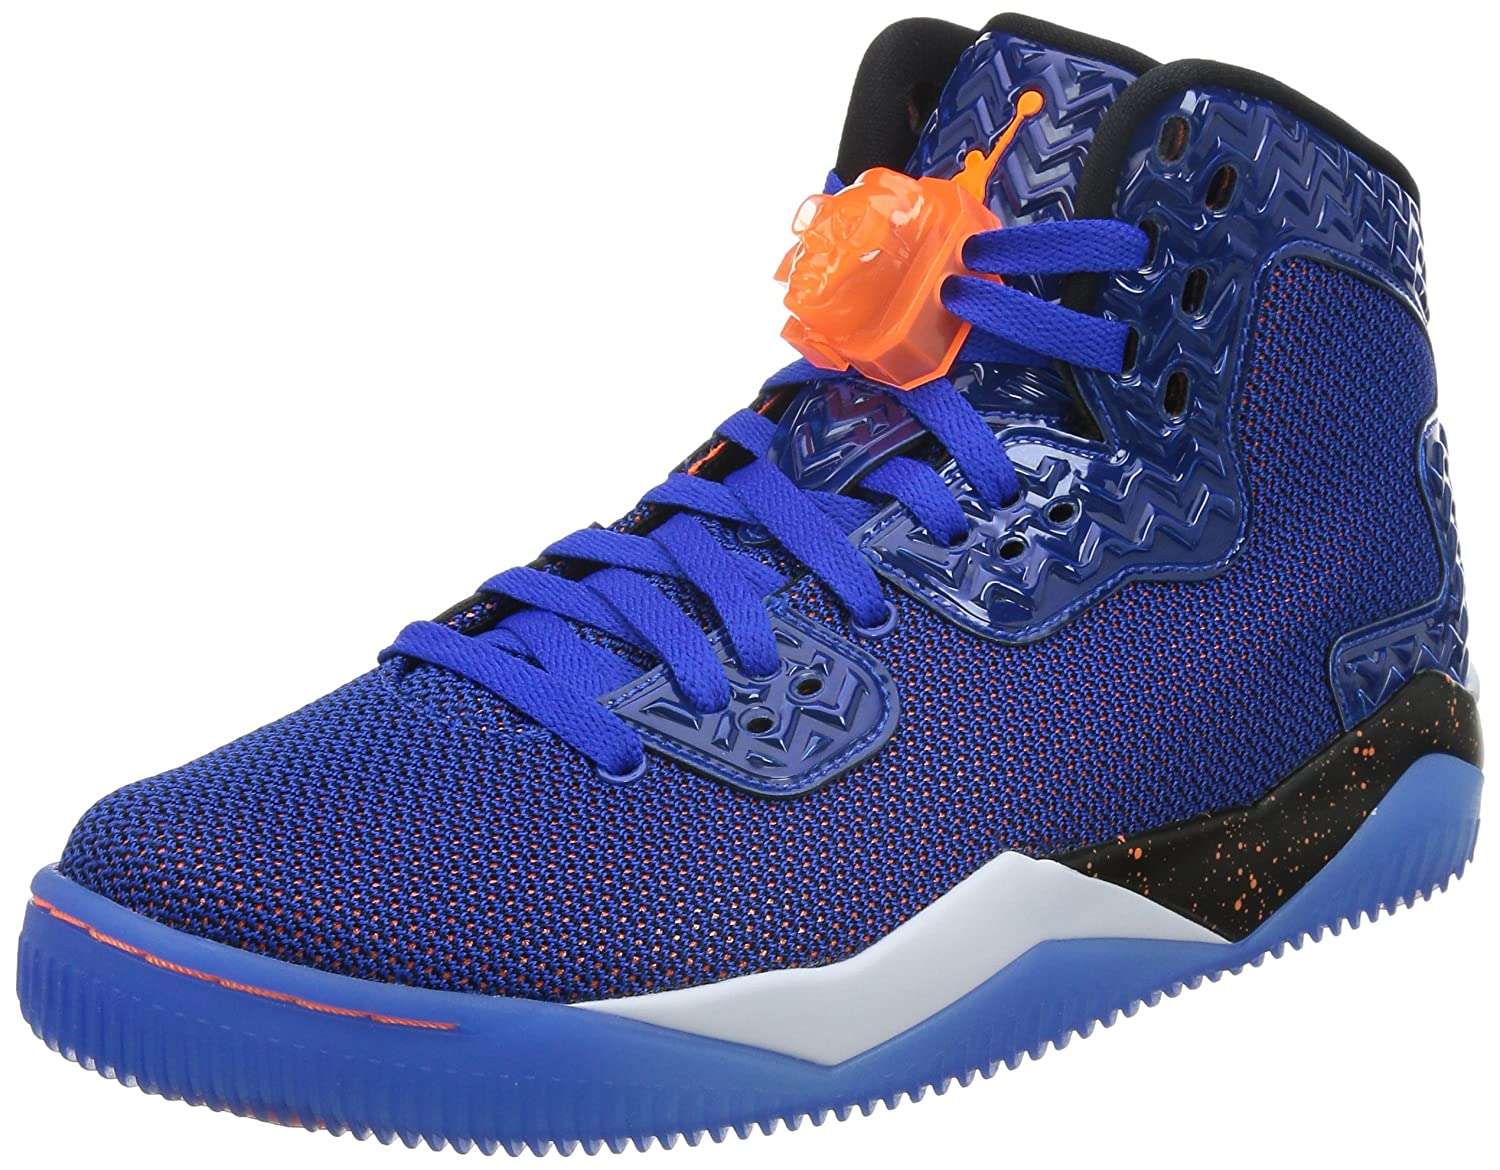 check out 7575d 9a3c1 Nike Air Jordan Spike Forty Pe, Men s Trainers